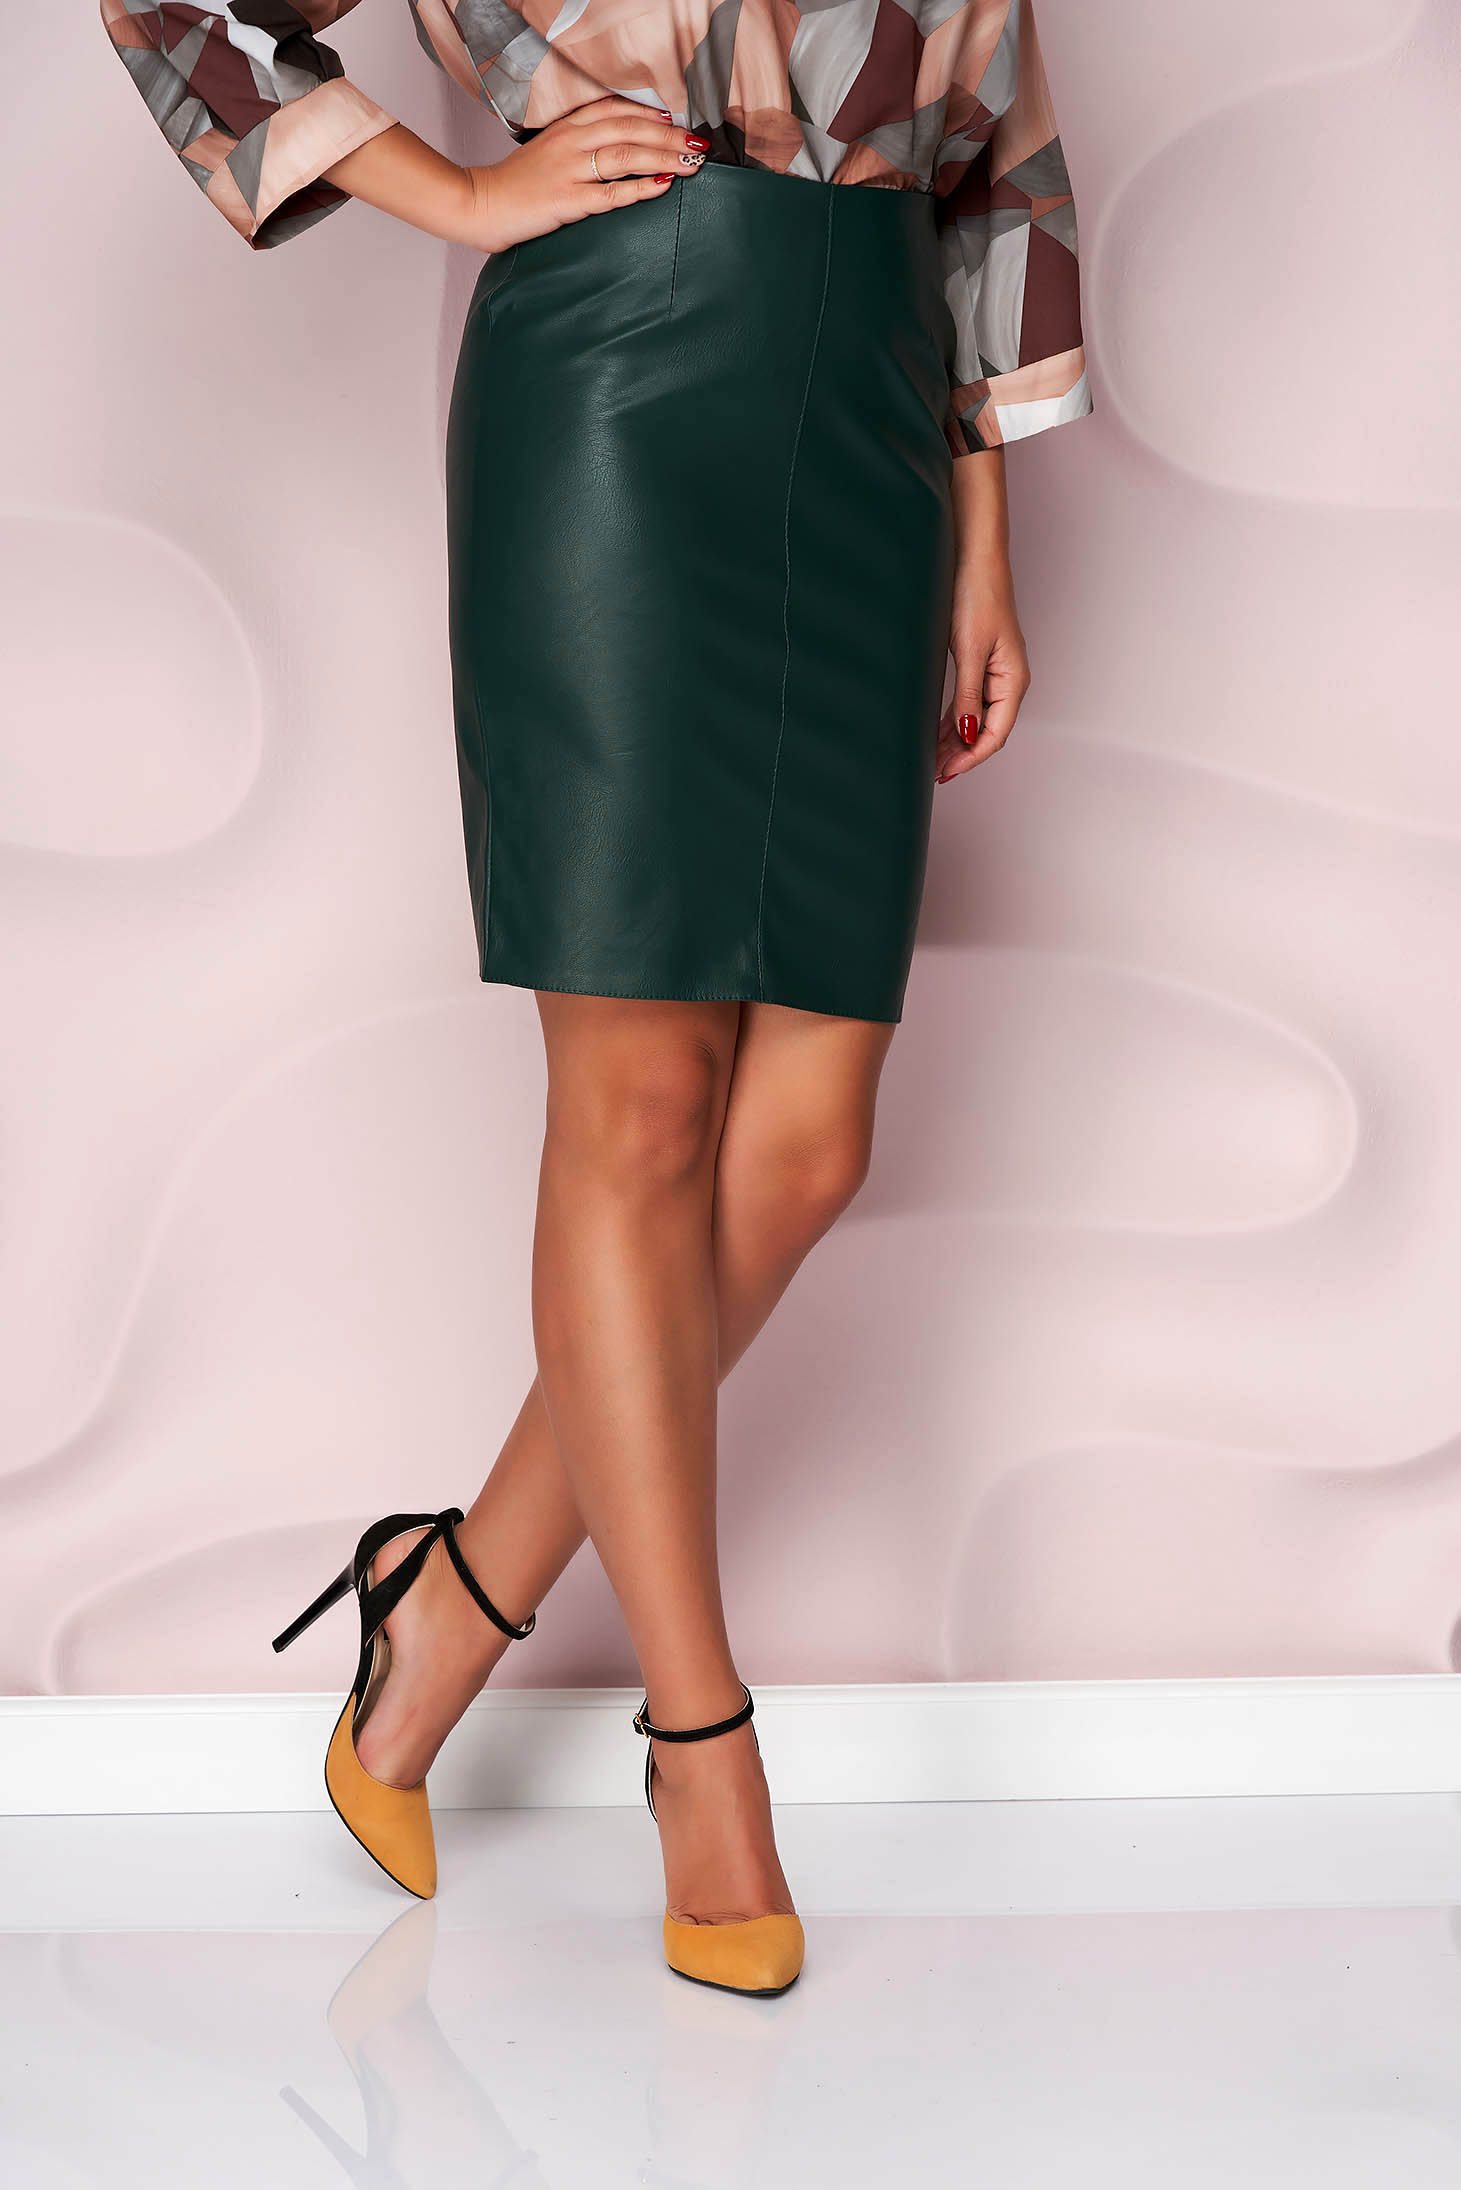 Darkgreen skirt short cut pencil from ecological leather office slightly elastic fabric